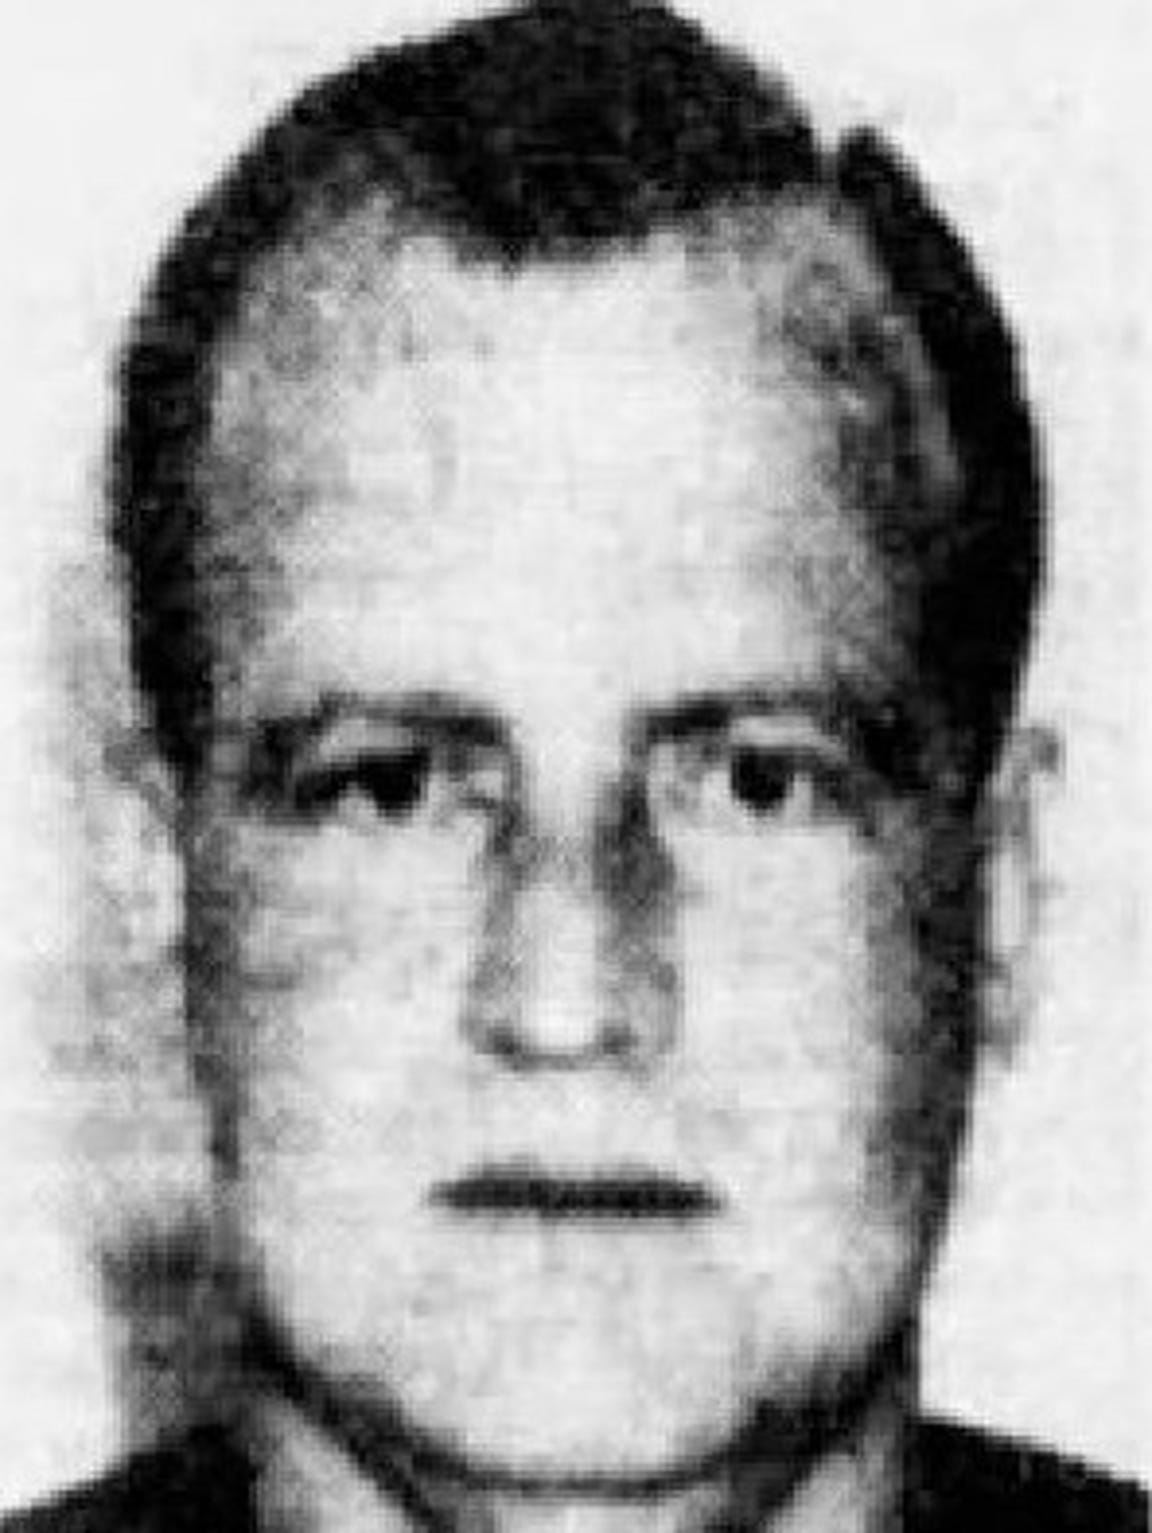 A mugshot of Gary Tison in an archive from The Arizona